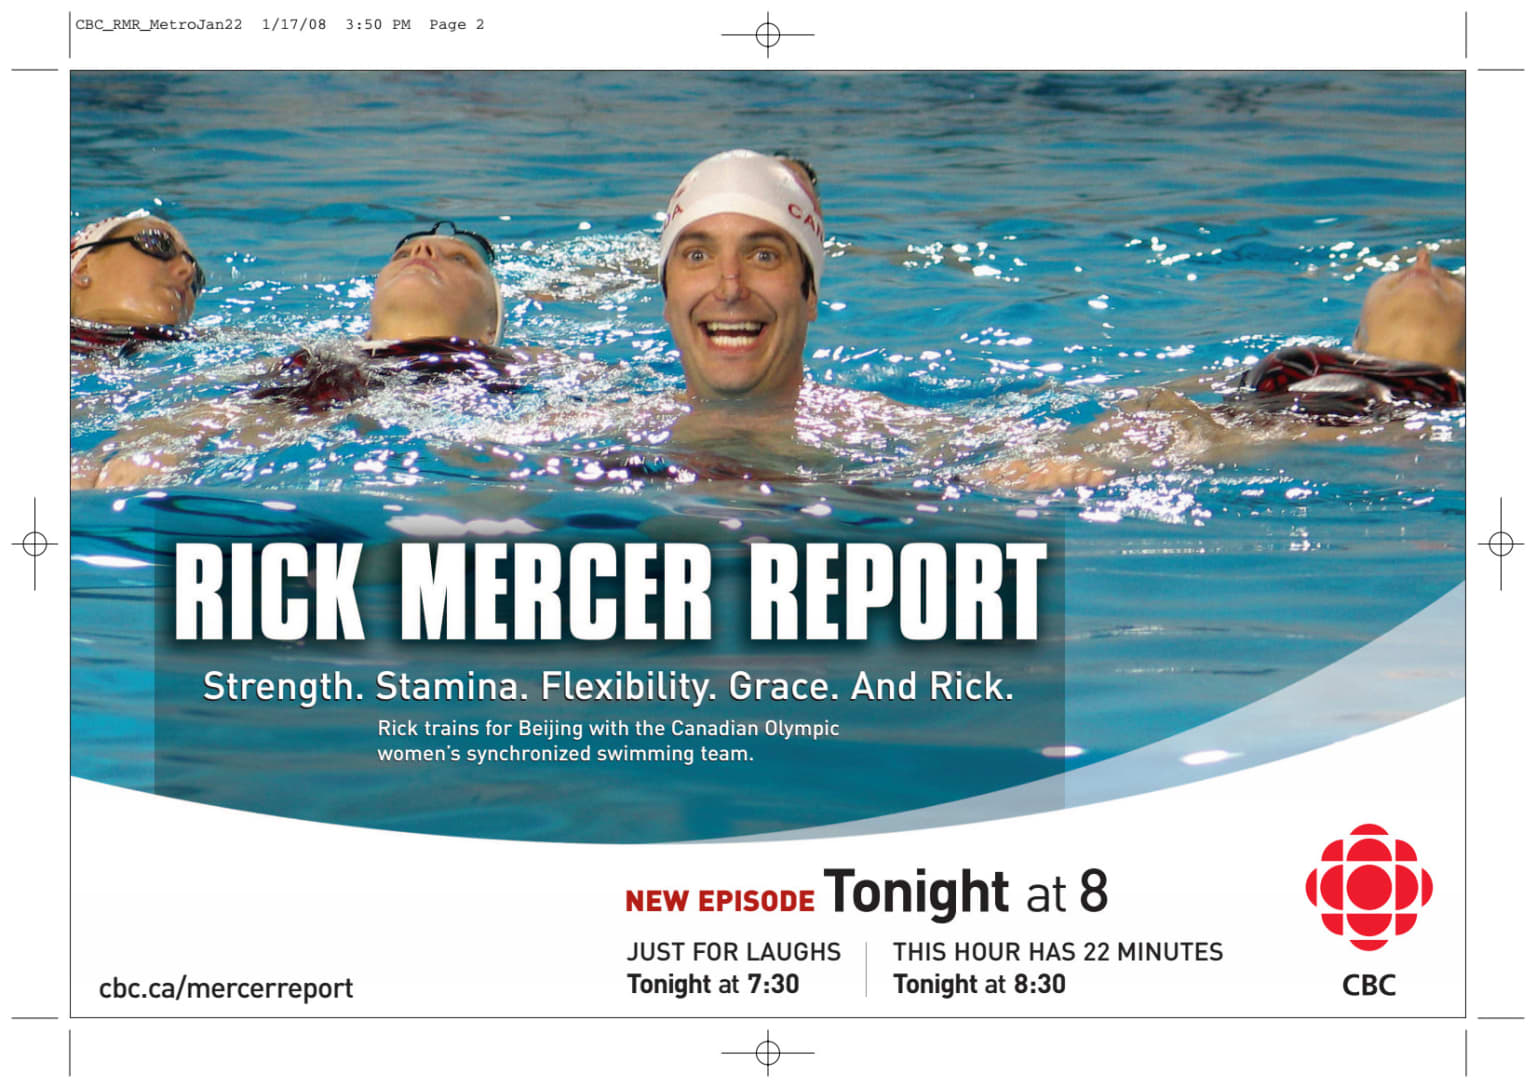 Promoting weekly Rick Mercer Report for CBC Television.